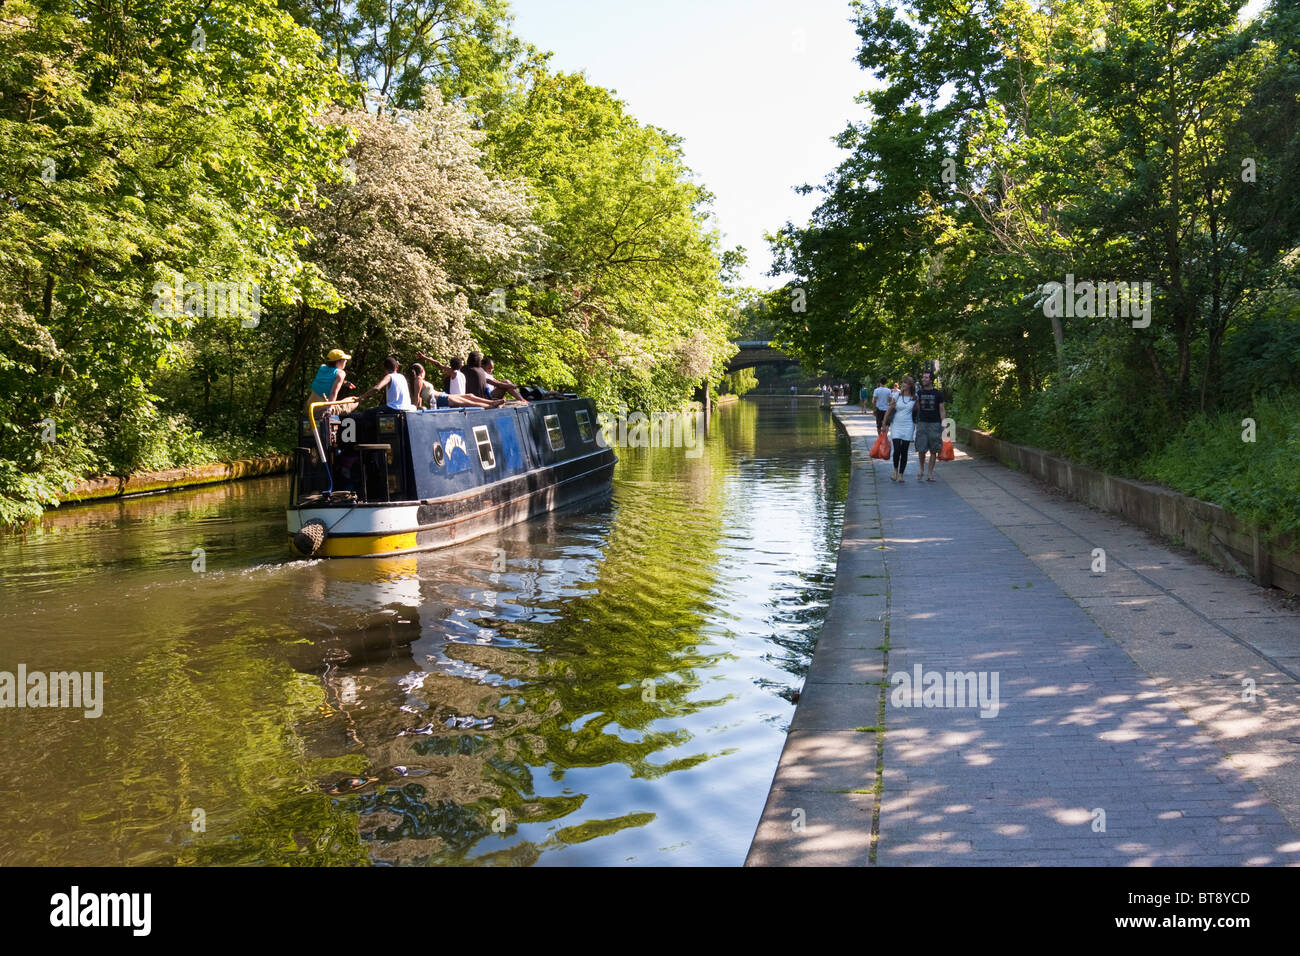 Towpath on the Regent's Canal, London in May 2010 - Stock Image